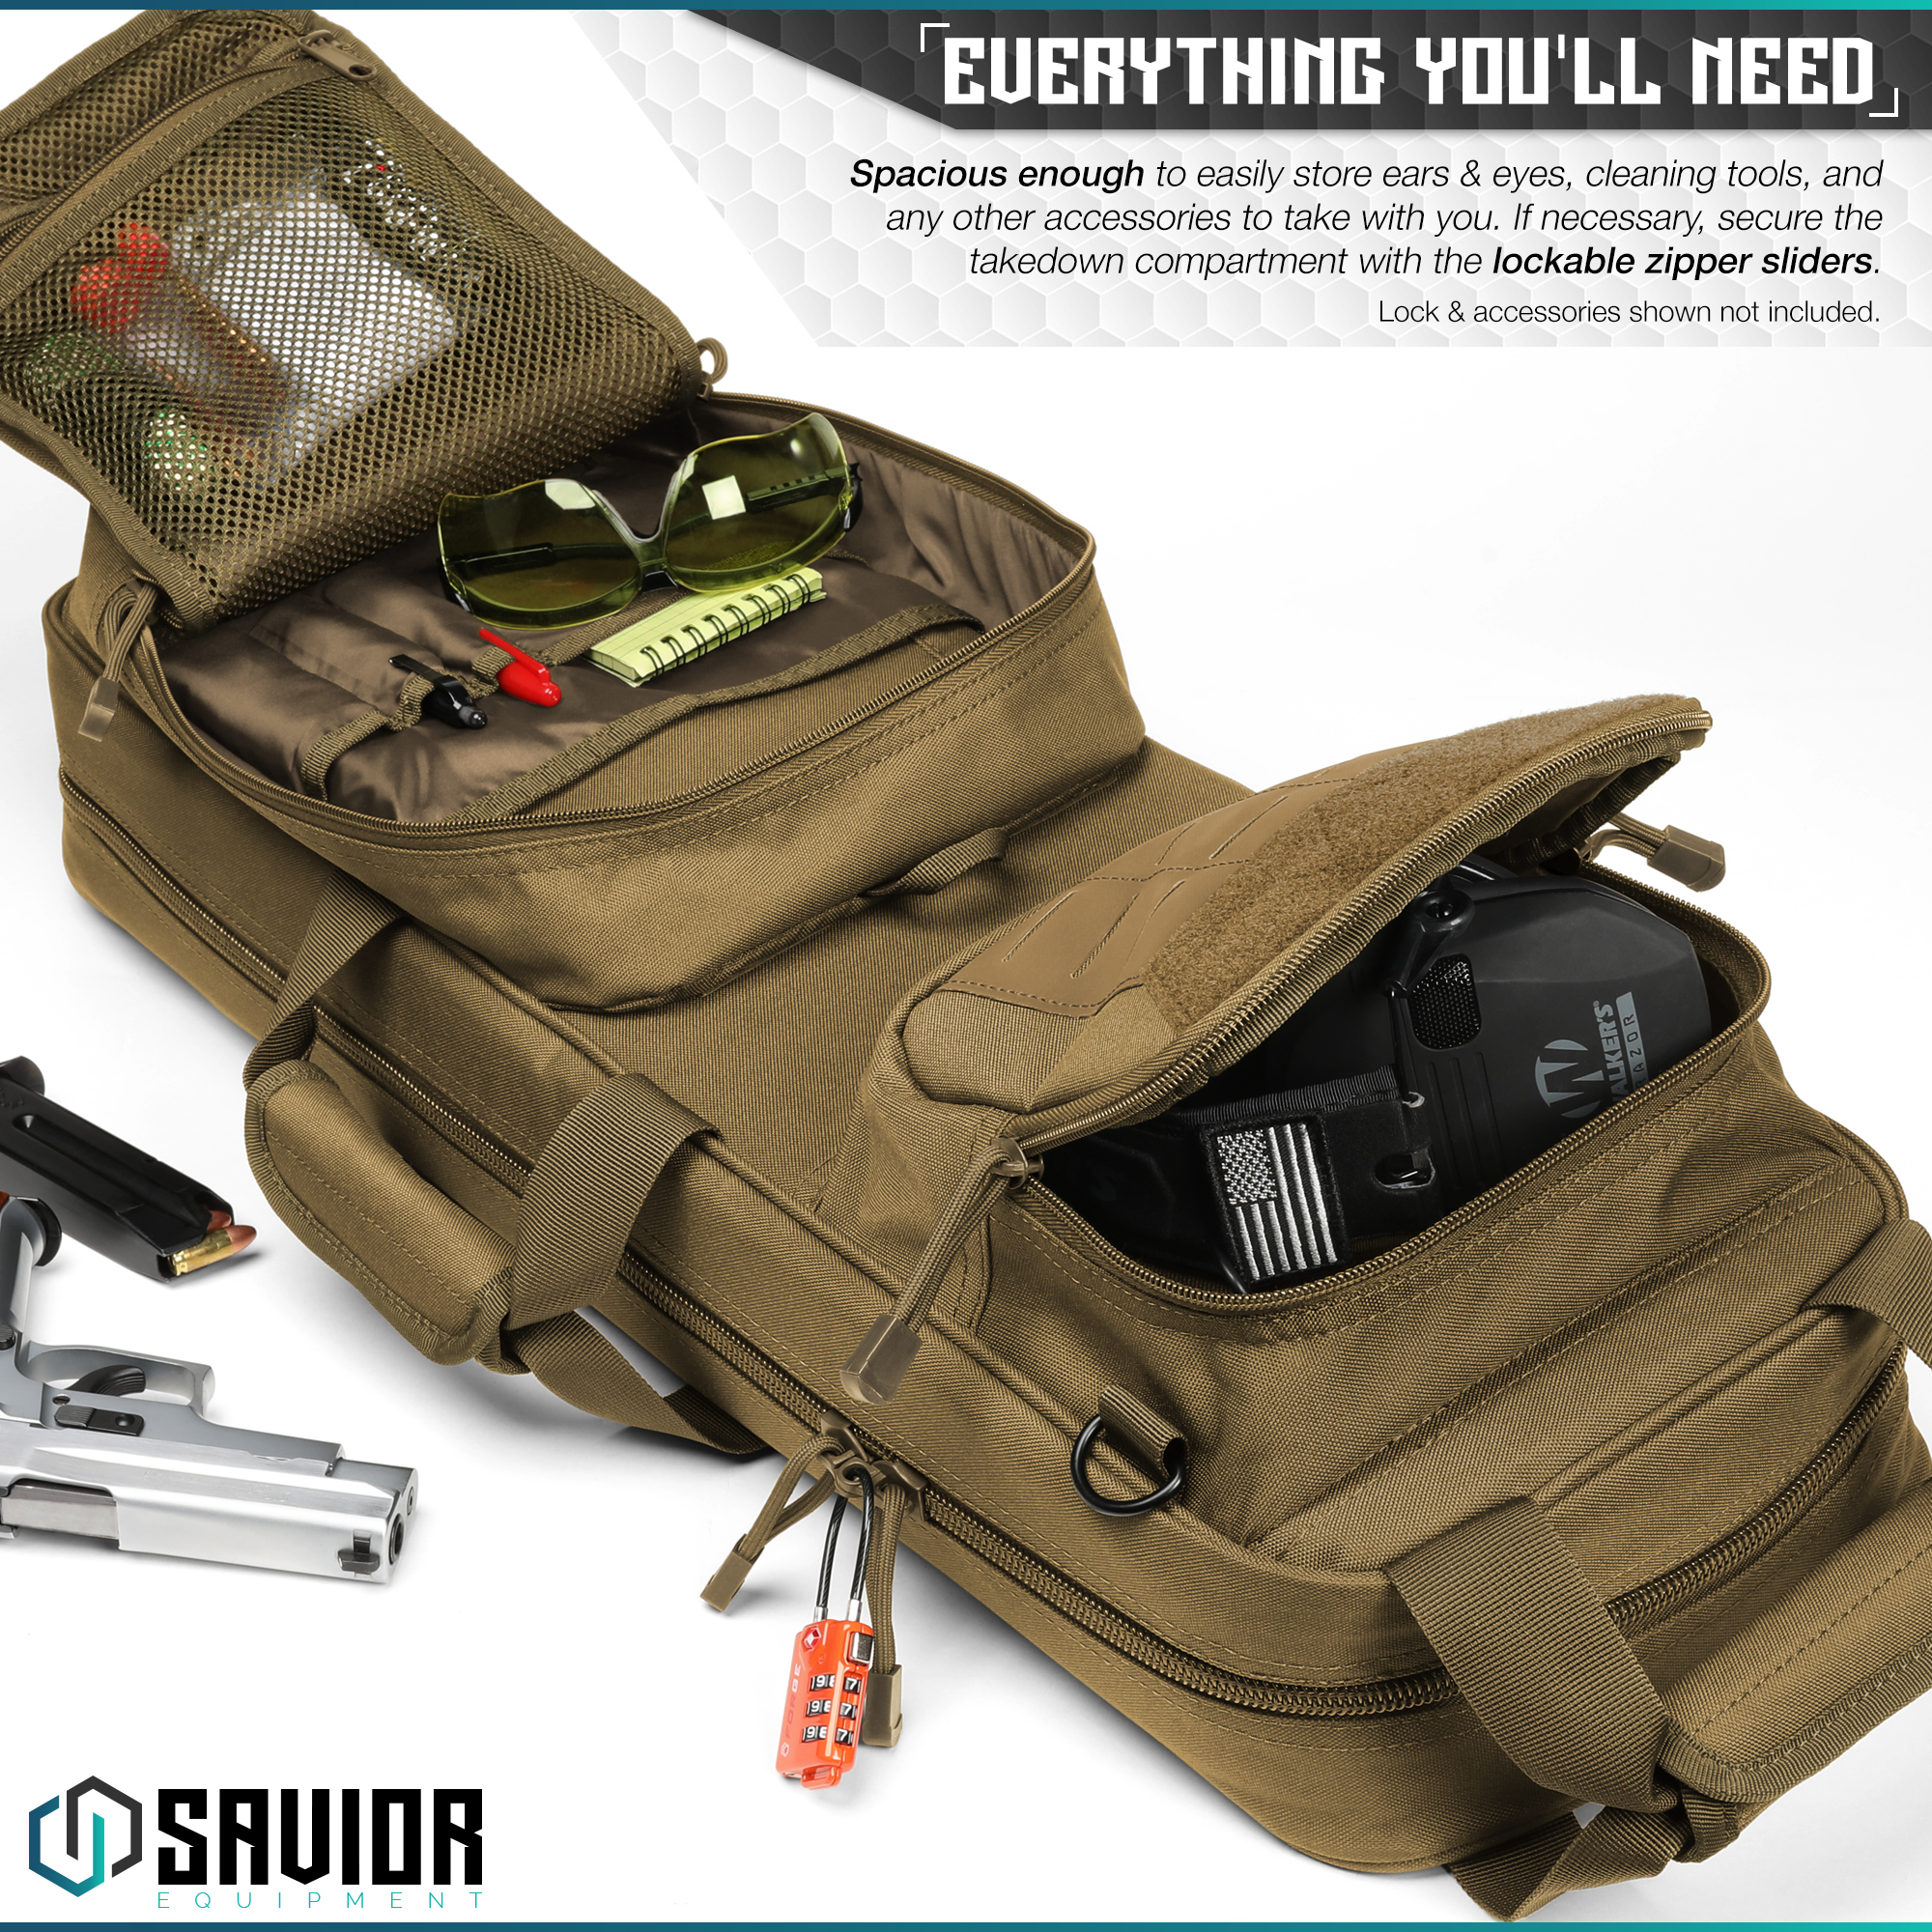 Savior-Tactical-Urban-Takedown-Bag-Carbine-Rifle-Padded-Shotgun-Firearm-Backpack thumbnail 5